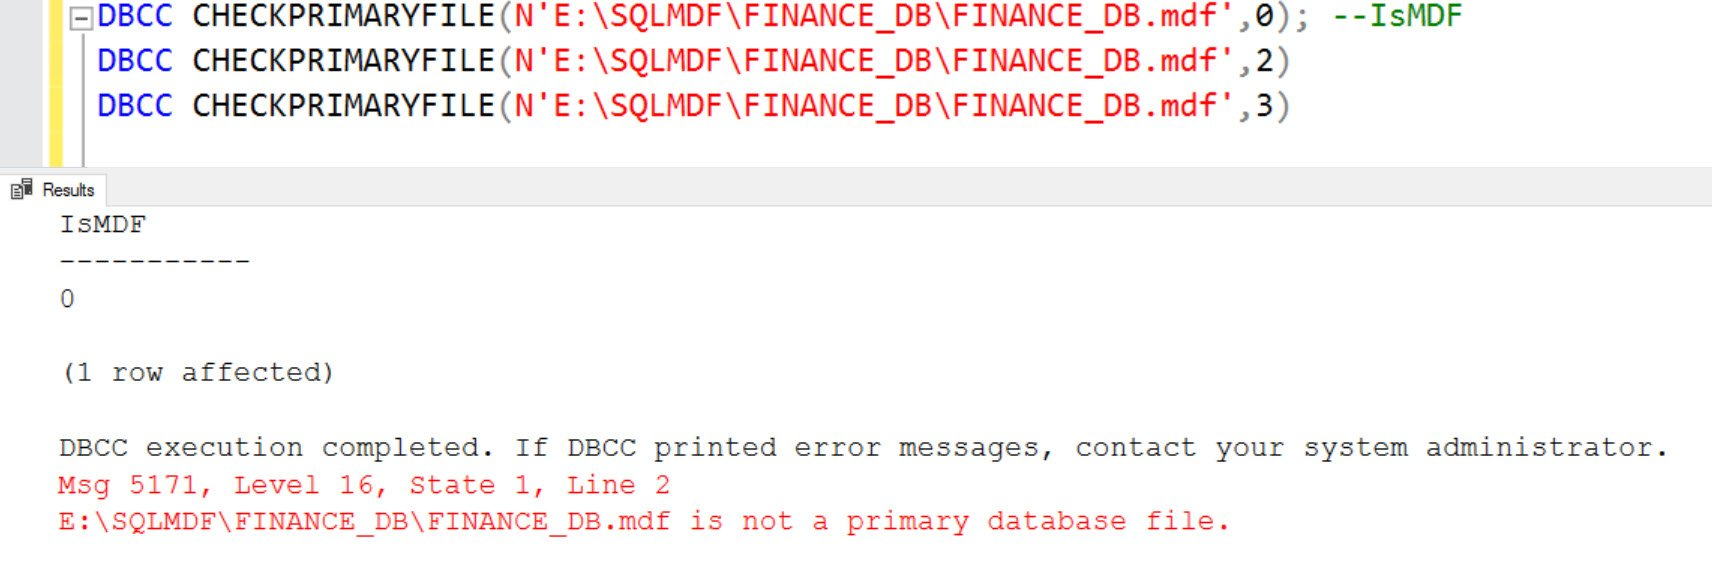 SQL SERVER - Unable to Attach Database Files - The PageAudit Property is Incorrect - Ransomware Attack ran-01